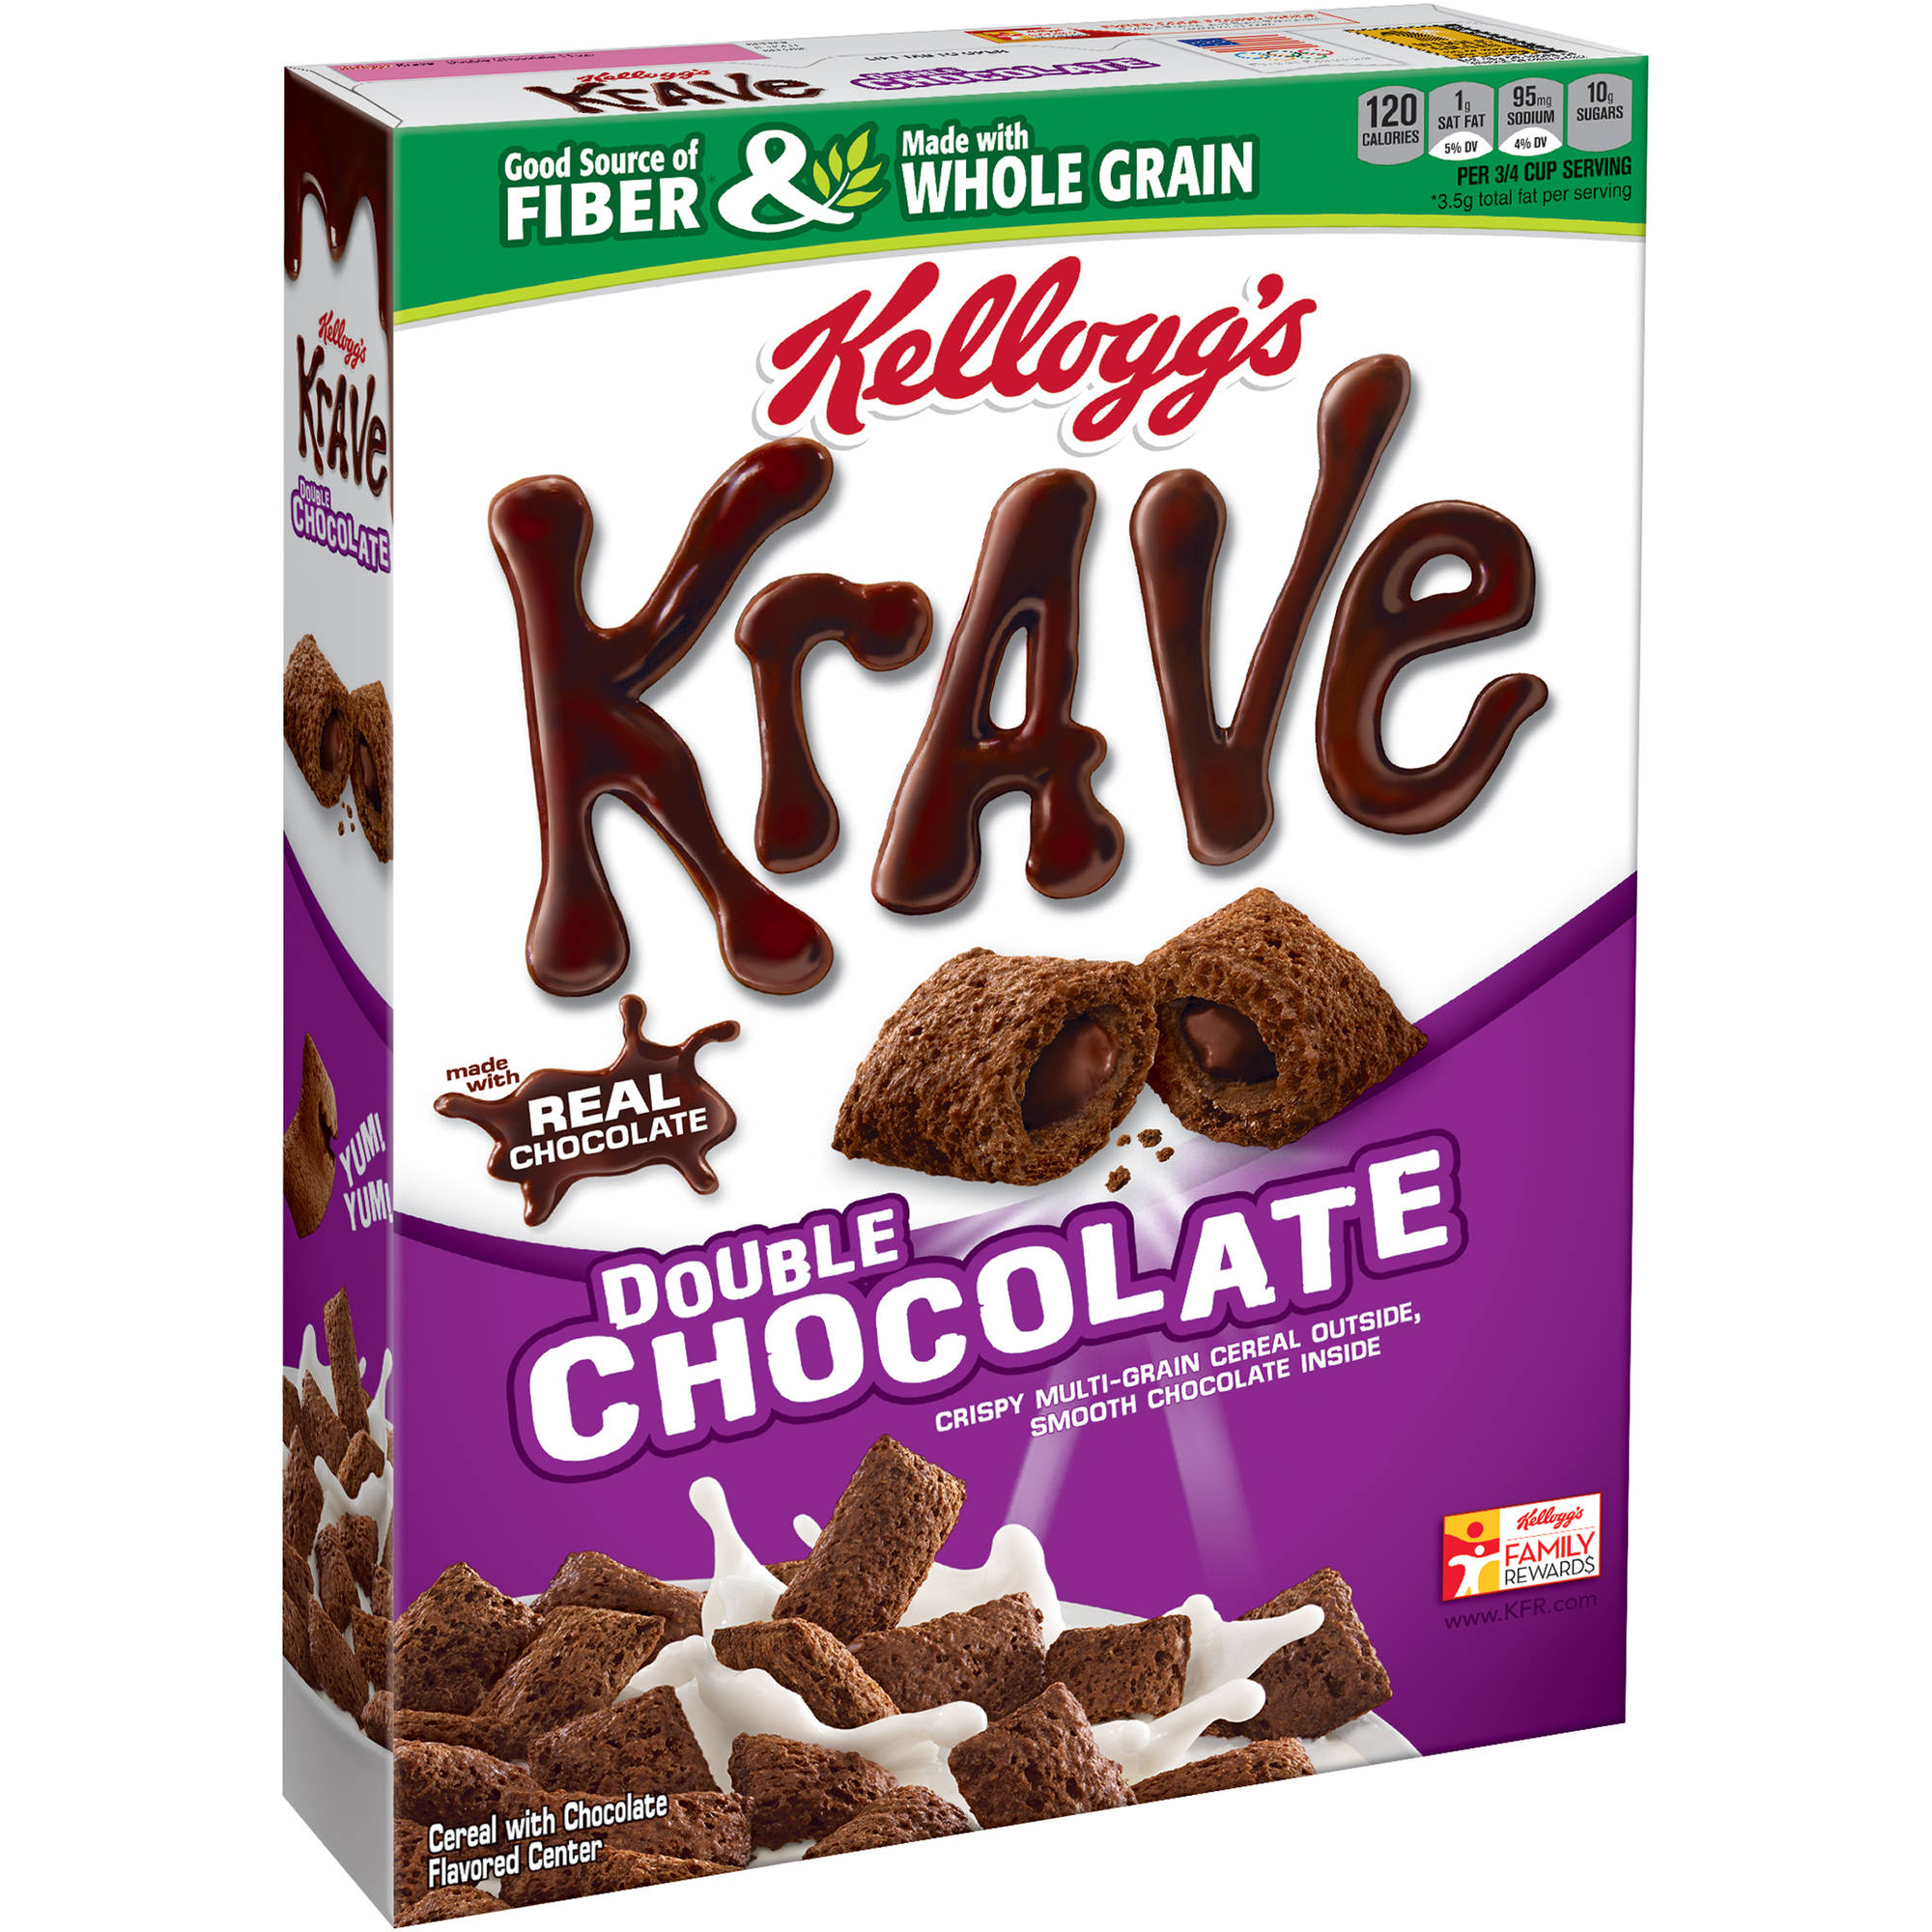 Kellogg's Krave Double Chocolate Cereal, 11 oz